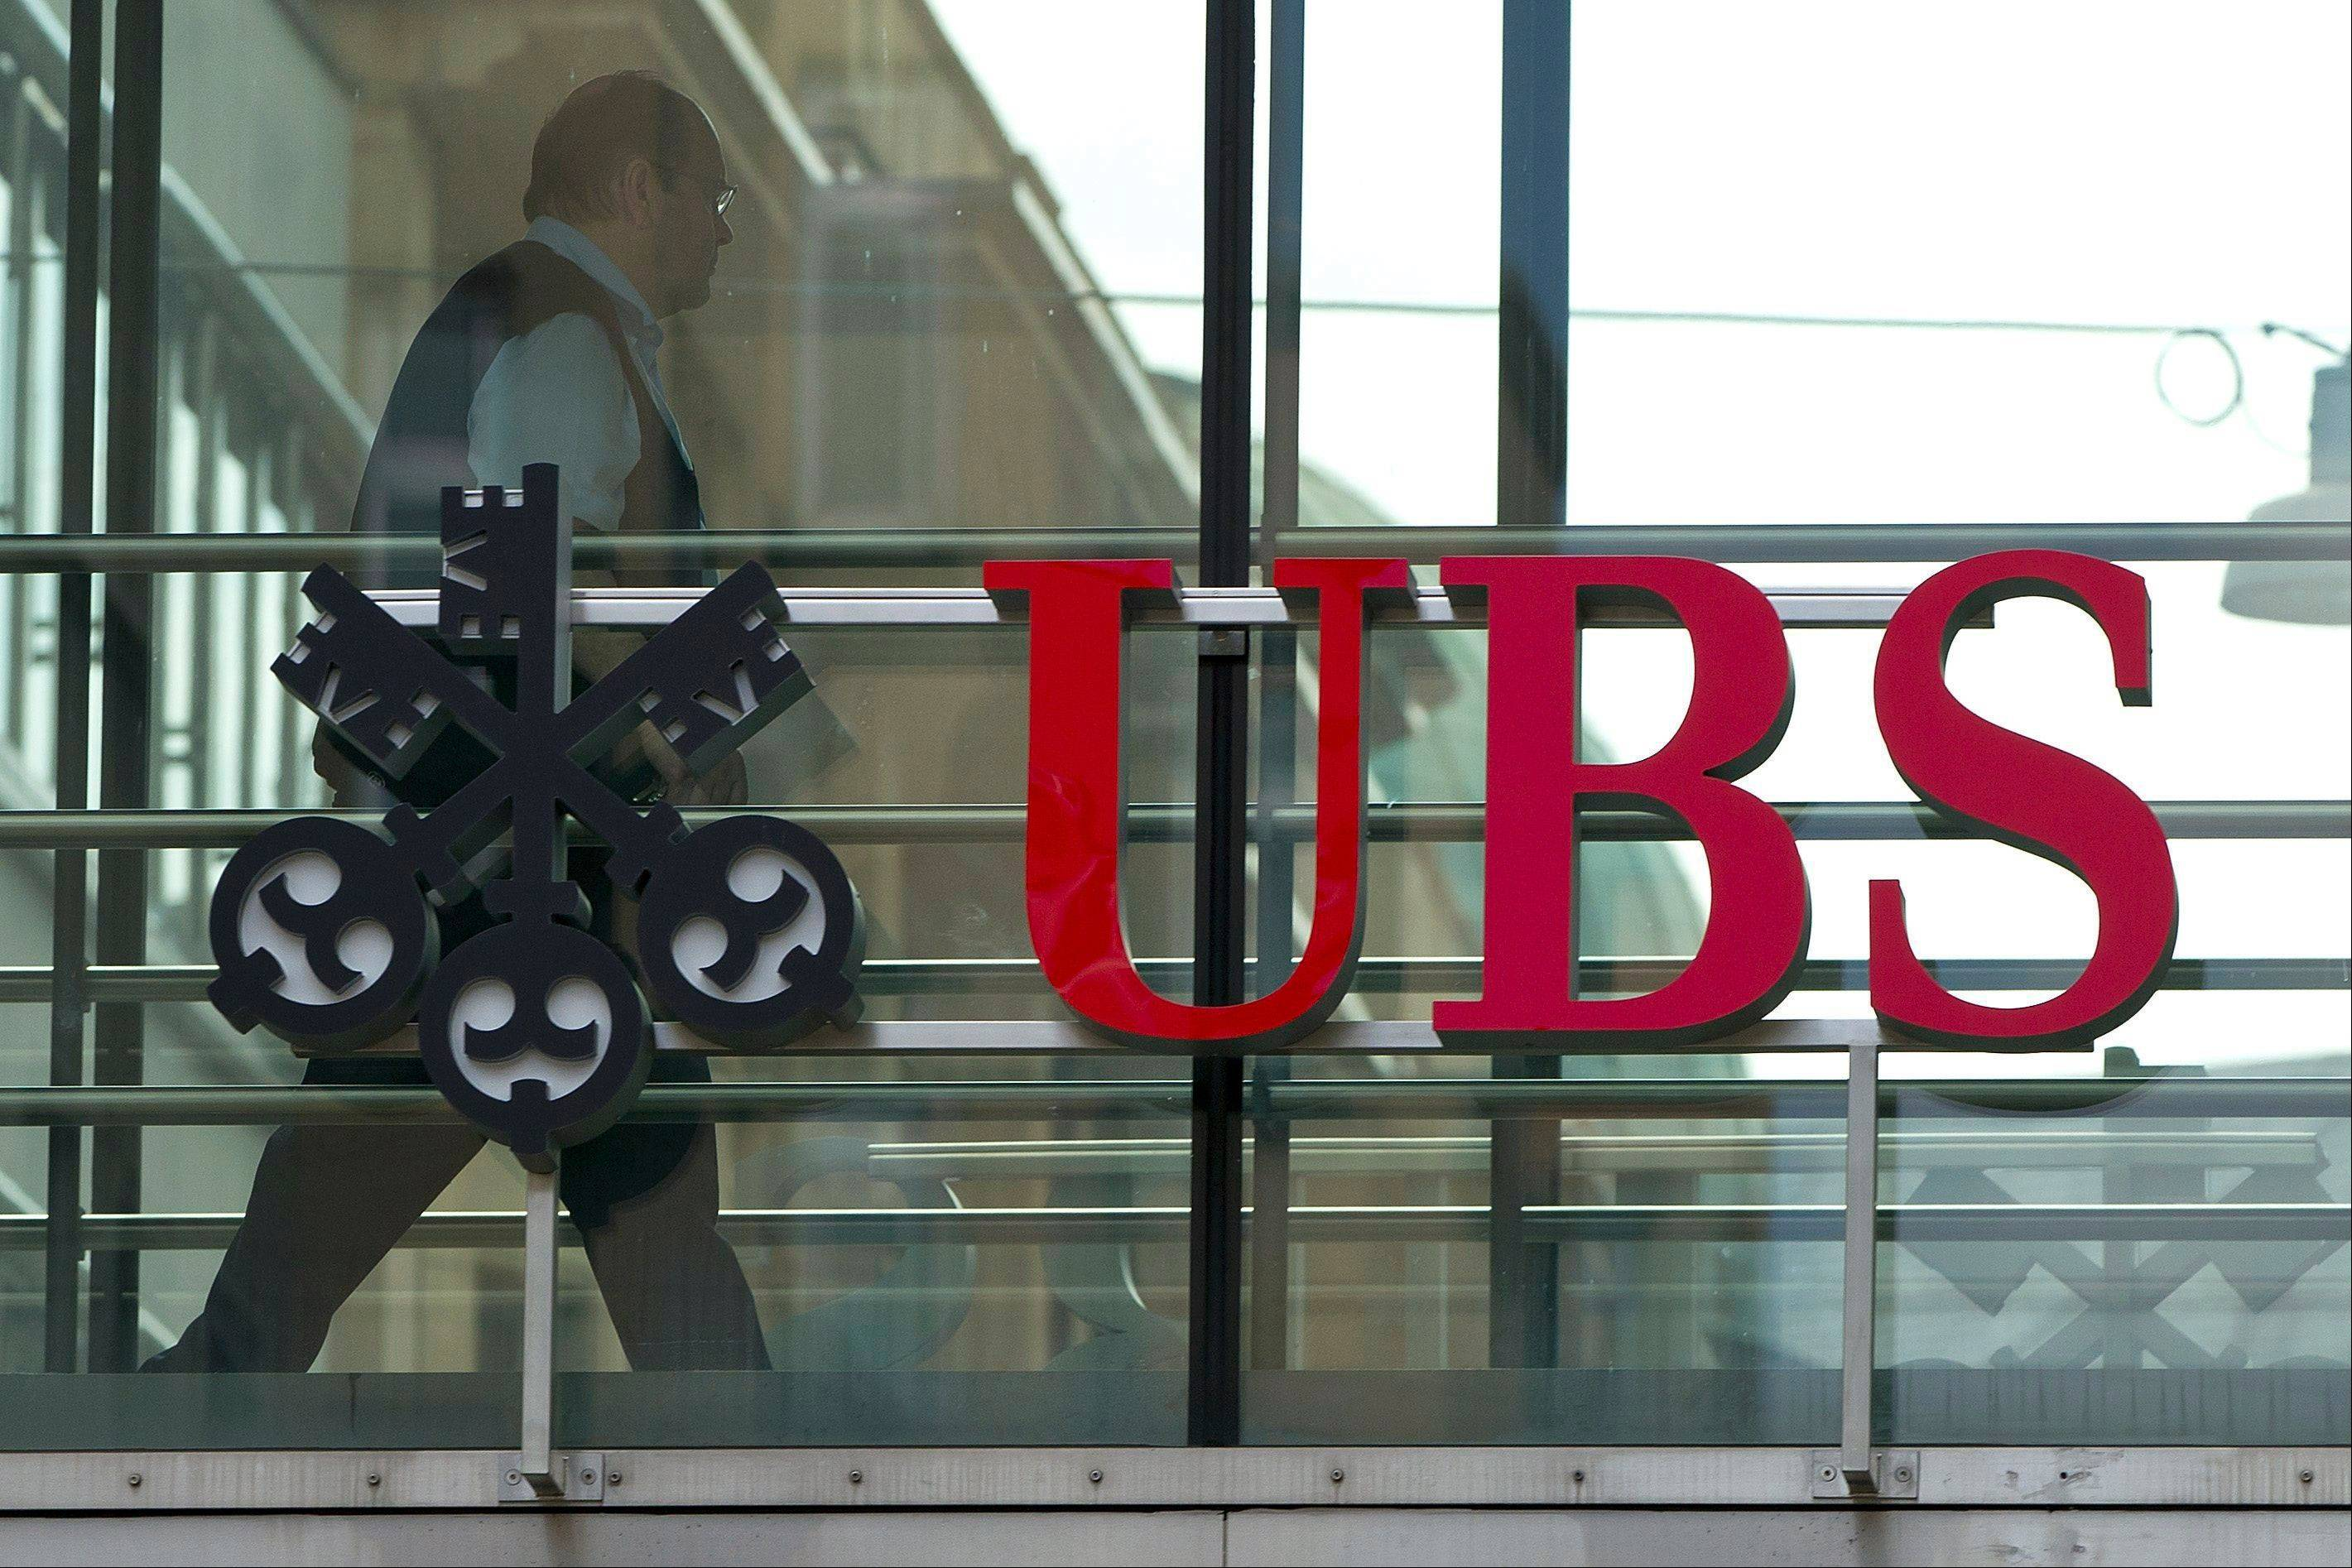 "UBS AG posted second-quarter net profits of 425 million Swiss francs (US$434.16 million) Tuesday, July 31, 2012, a sharp plunge from the 1.02 billion Swiss francs (US$1.2 billion) it posted in the comparable period a year ago. Hit by lower trading revenue and fewer commissions and client fees, Switzerland's largest bank said the 58 percent net profit drop reflects ""challenging conditions marked by increased volatility and greater client caution."""